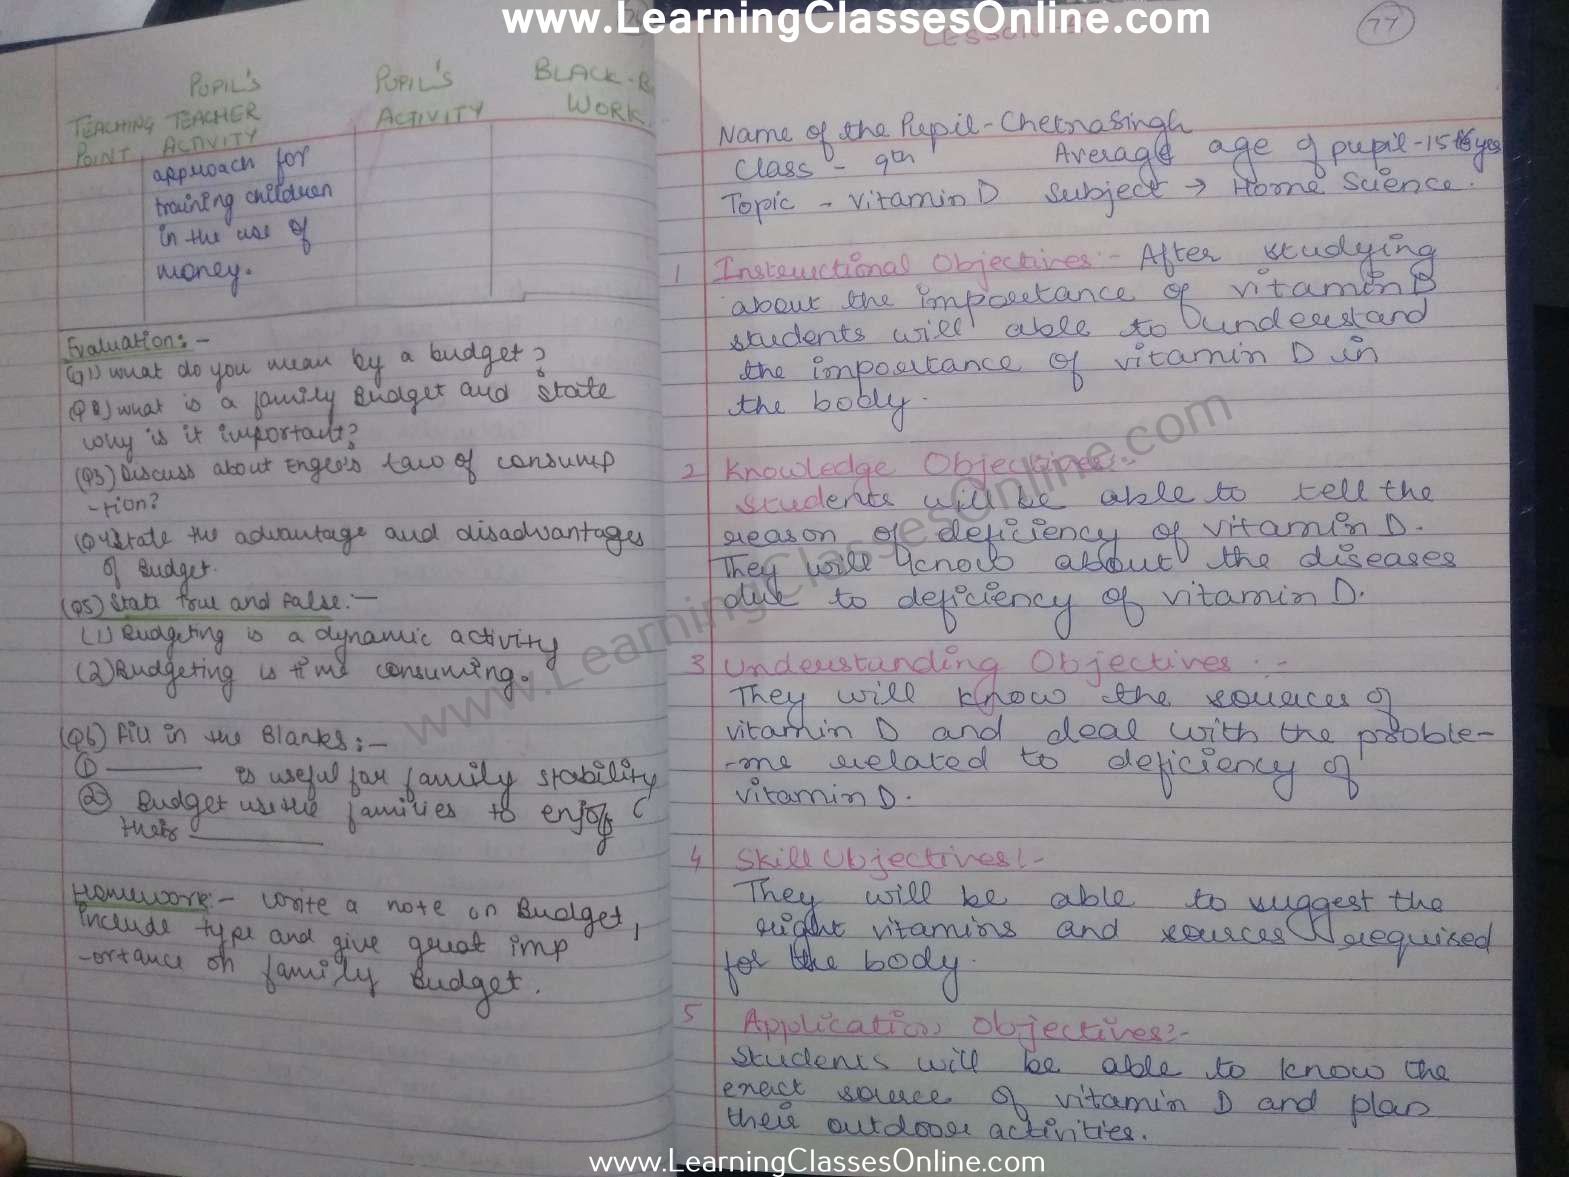 Vitamins Lesson Plan Home Science for Class 9 teachers free download pdf in English